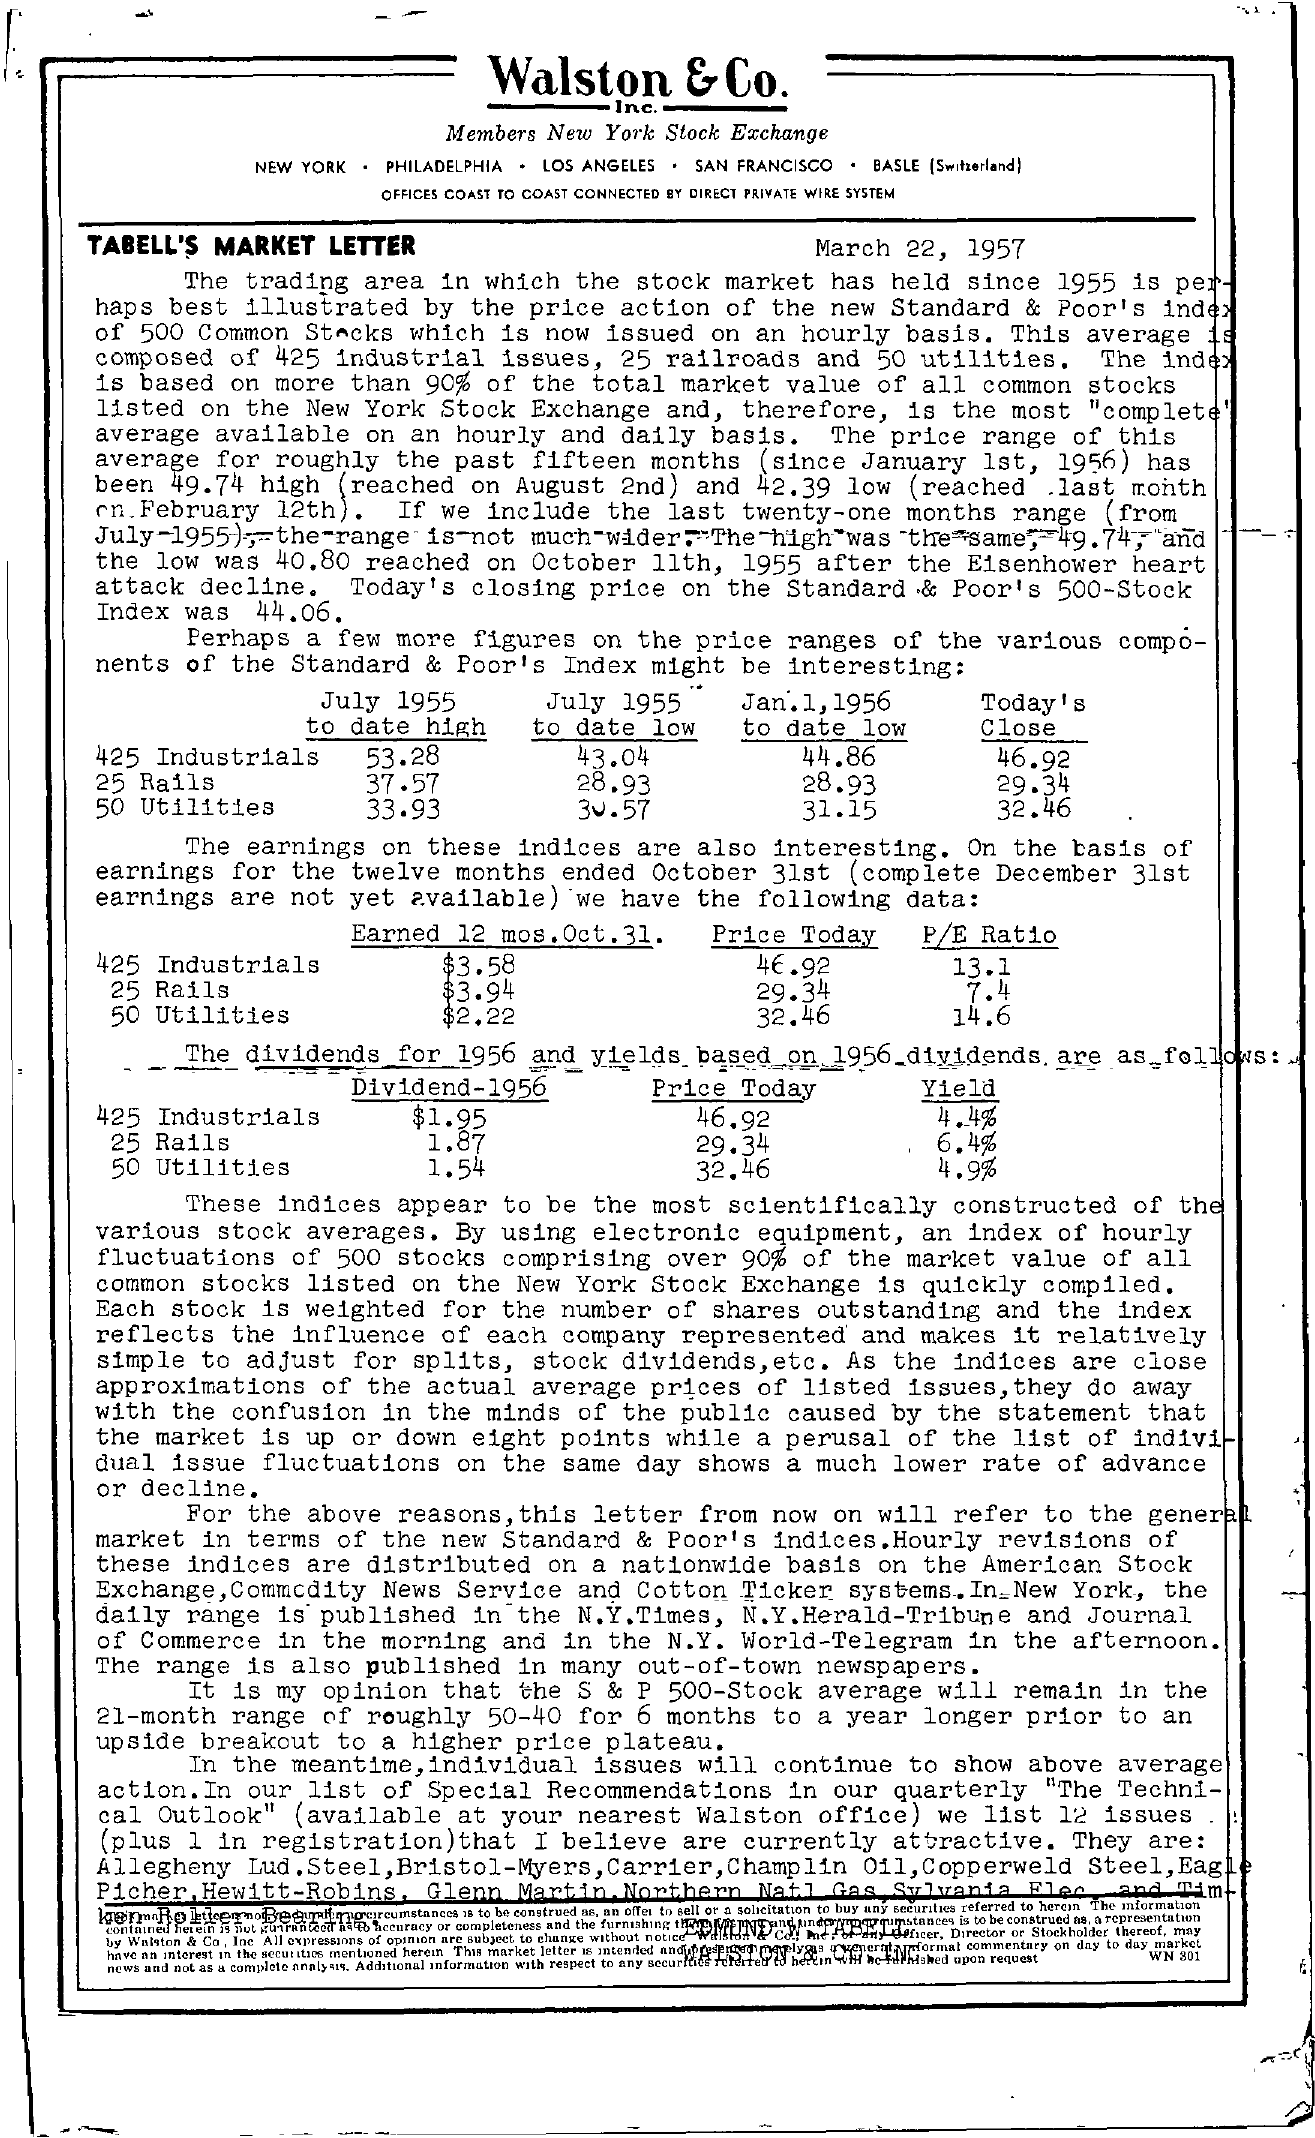 Tabell's Market Letter - March 22, 1957